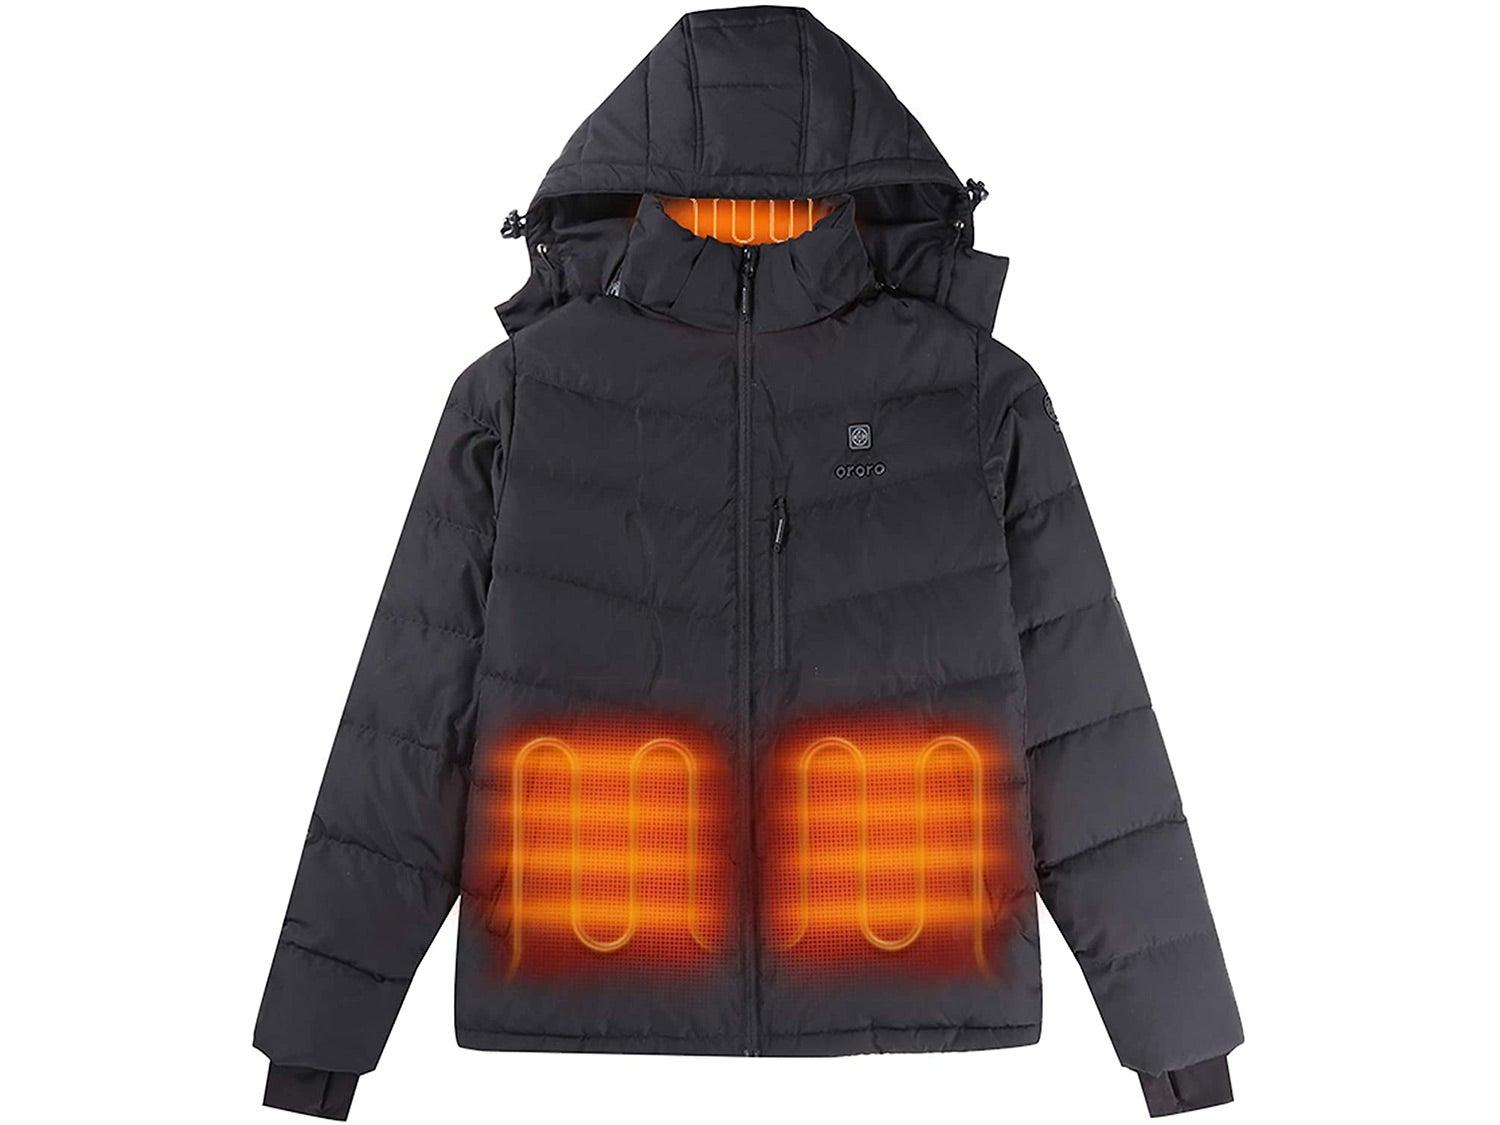 Ororo 2021 Heated Jacket with Down Insulation